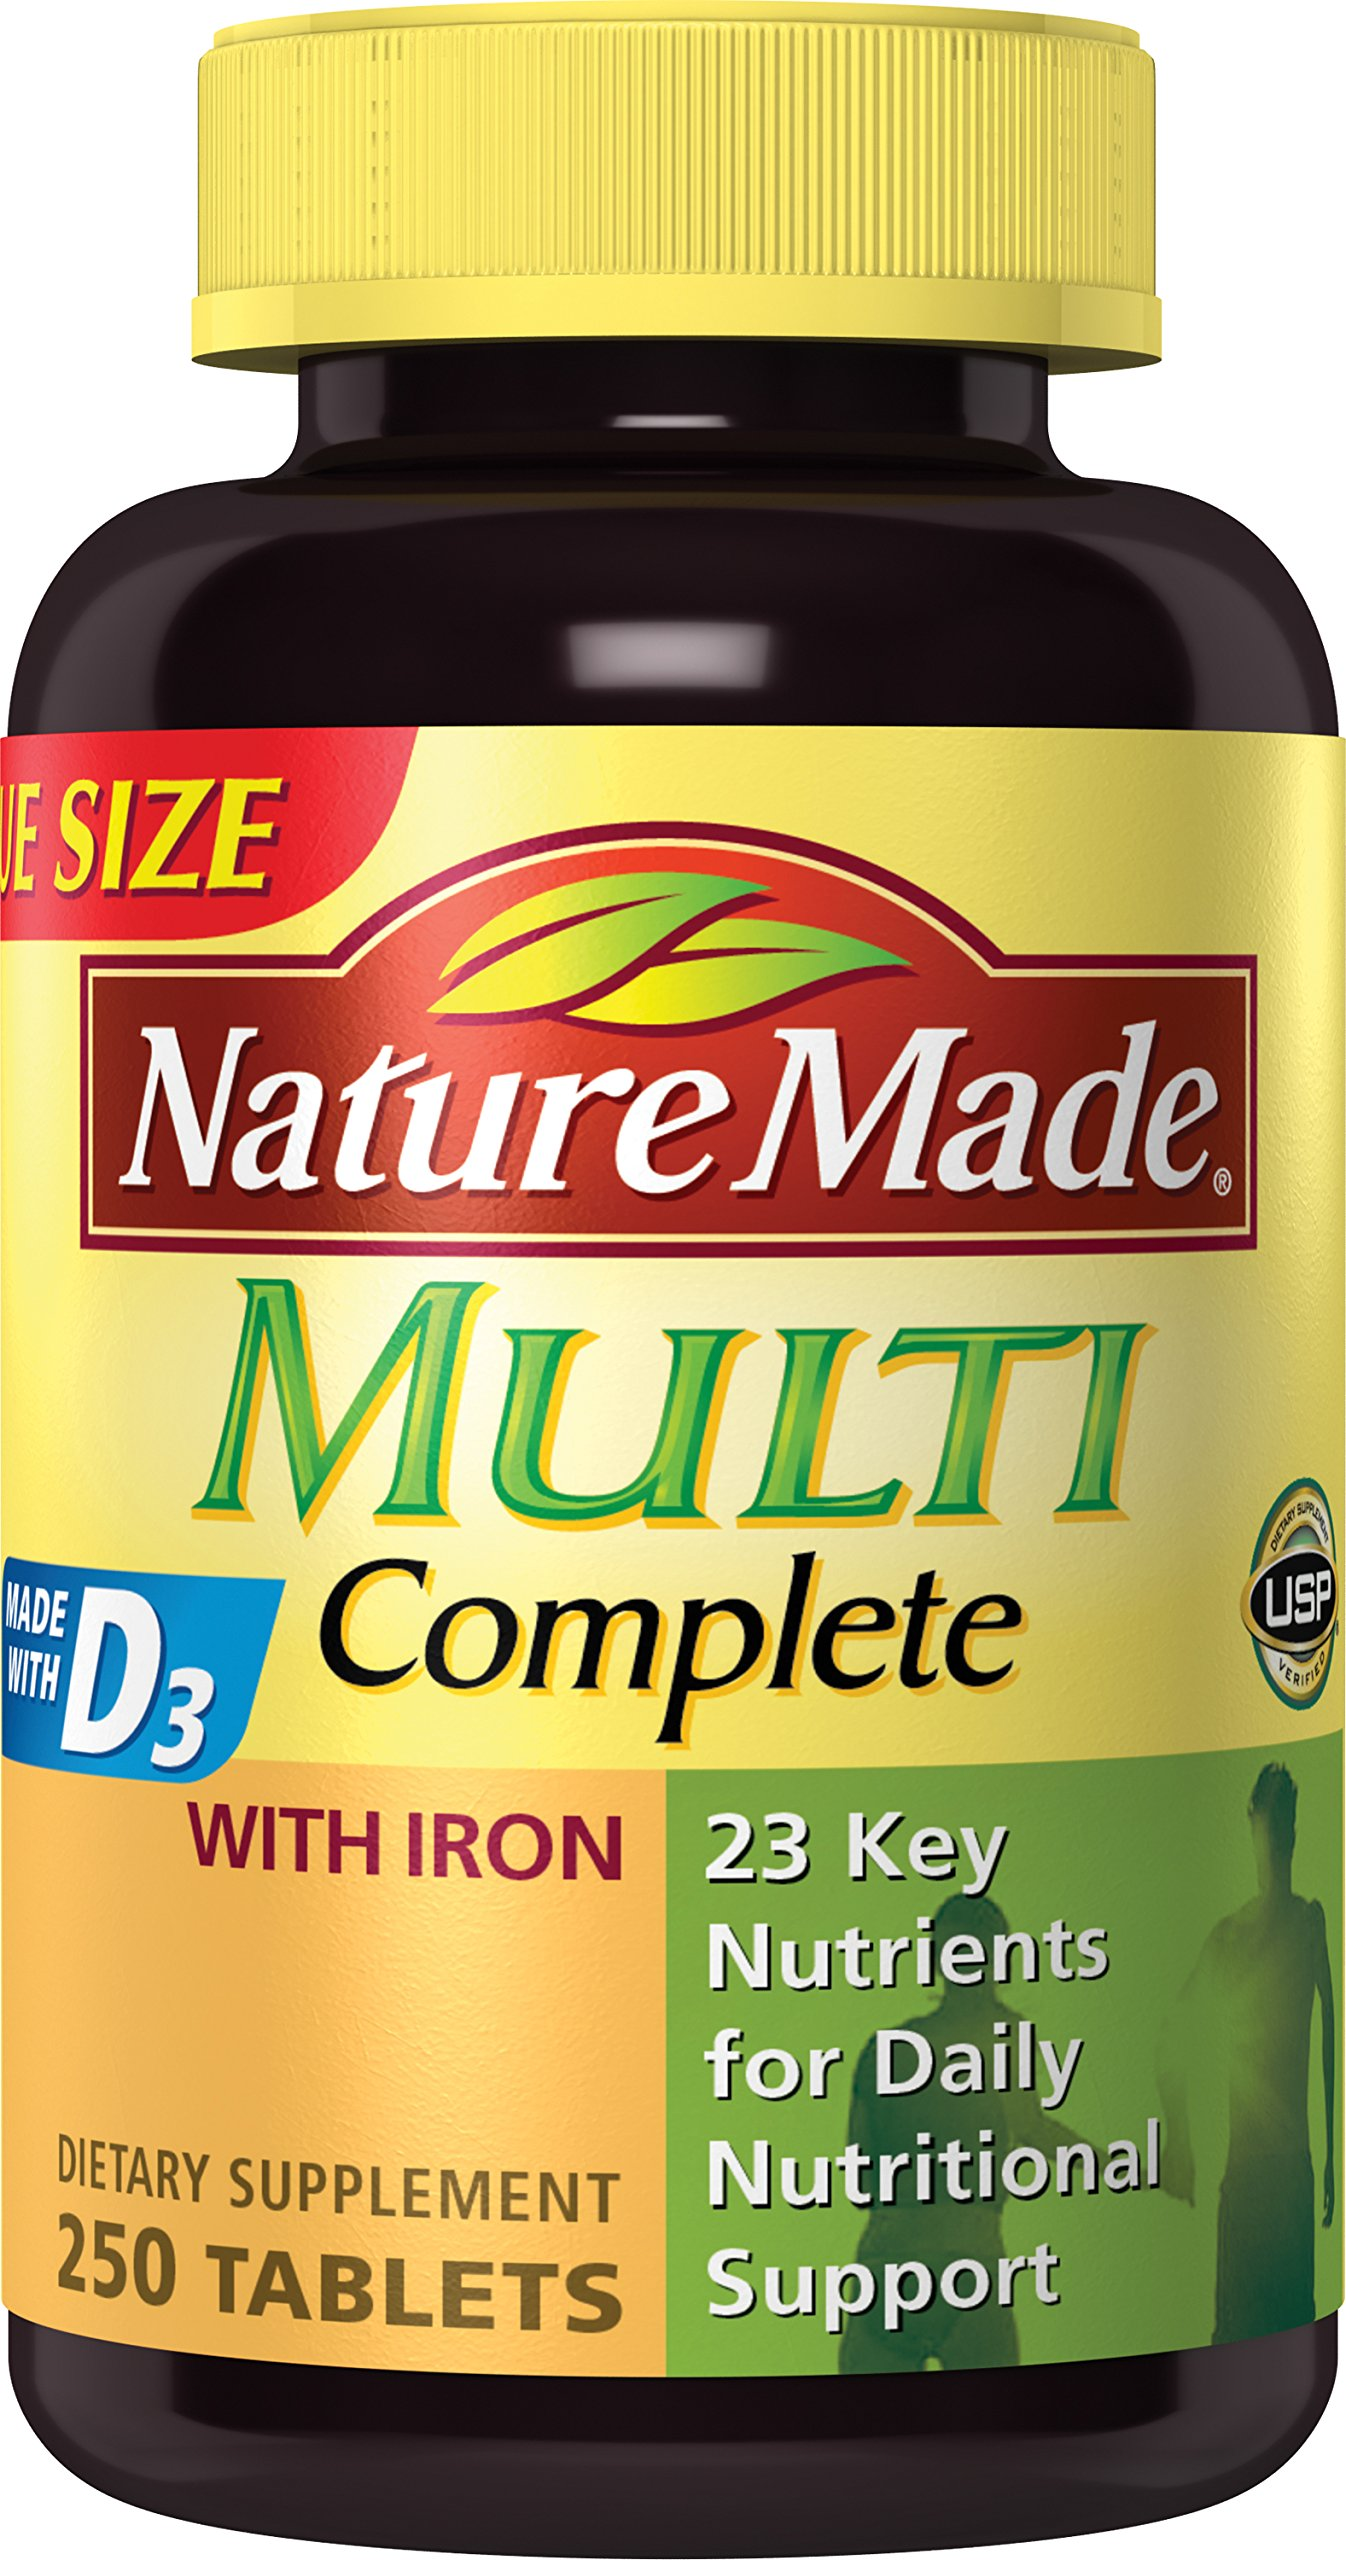 Nature Made Multi Complete Tablets w. Iron Value Size (Pack of 3)